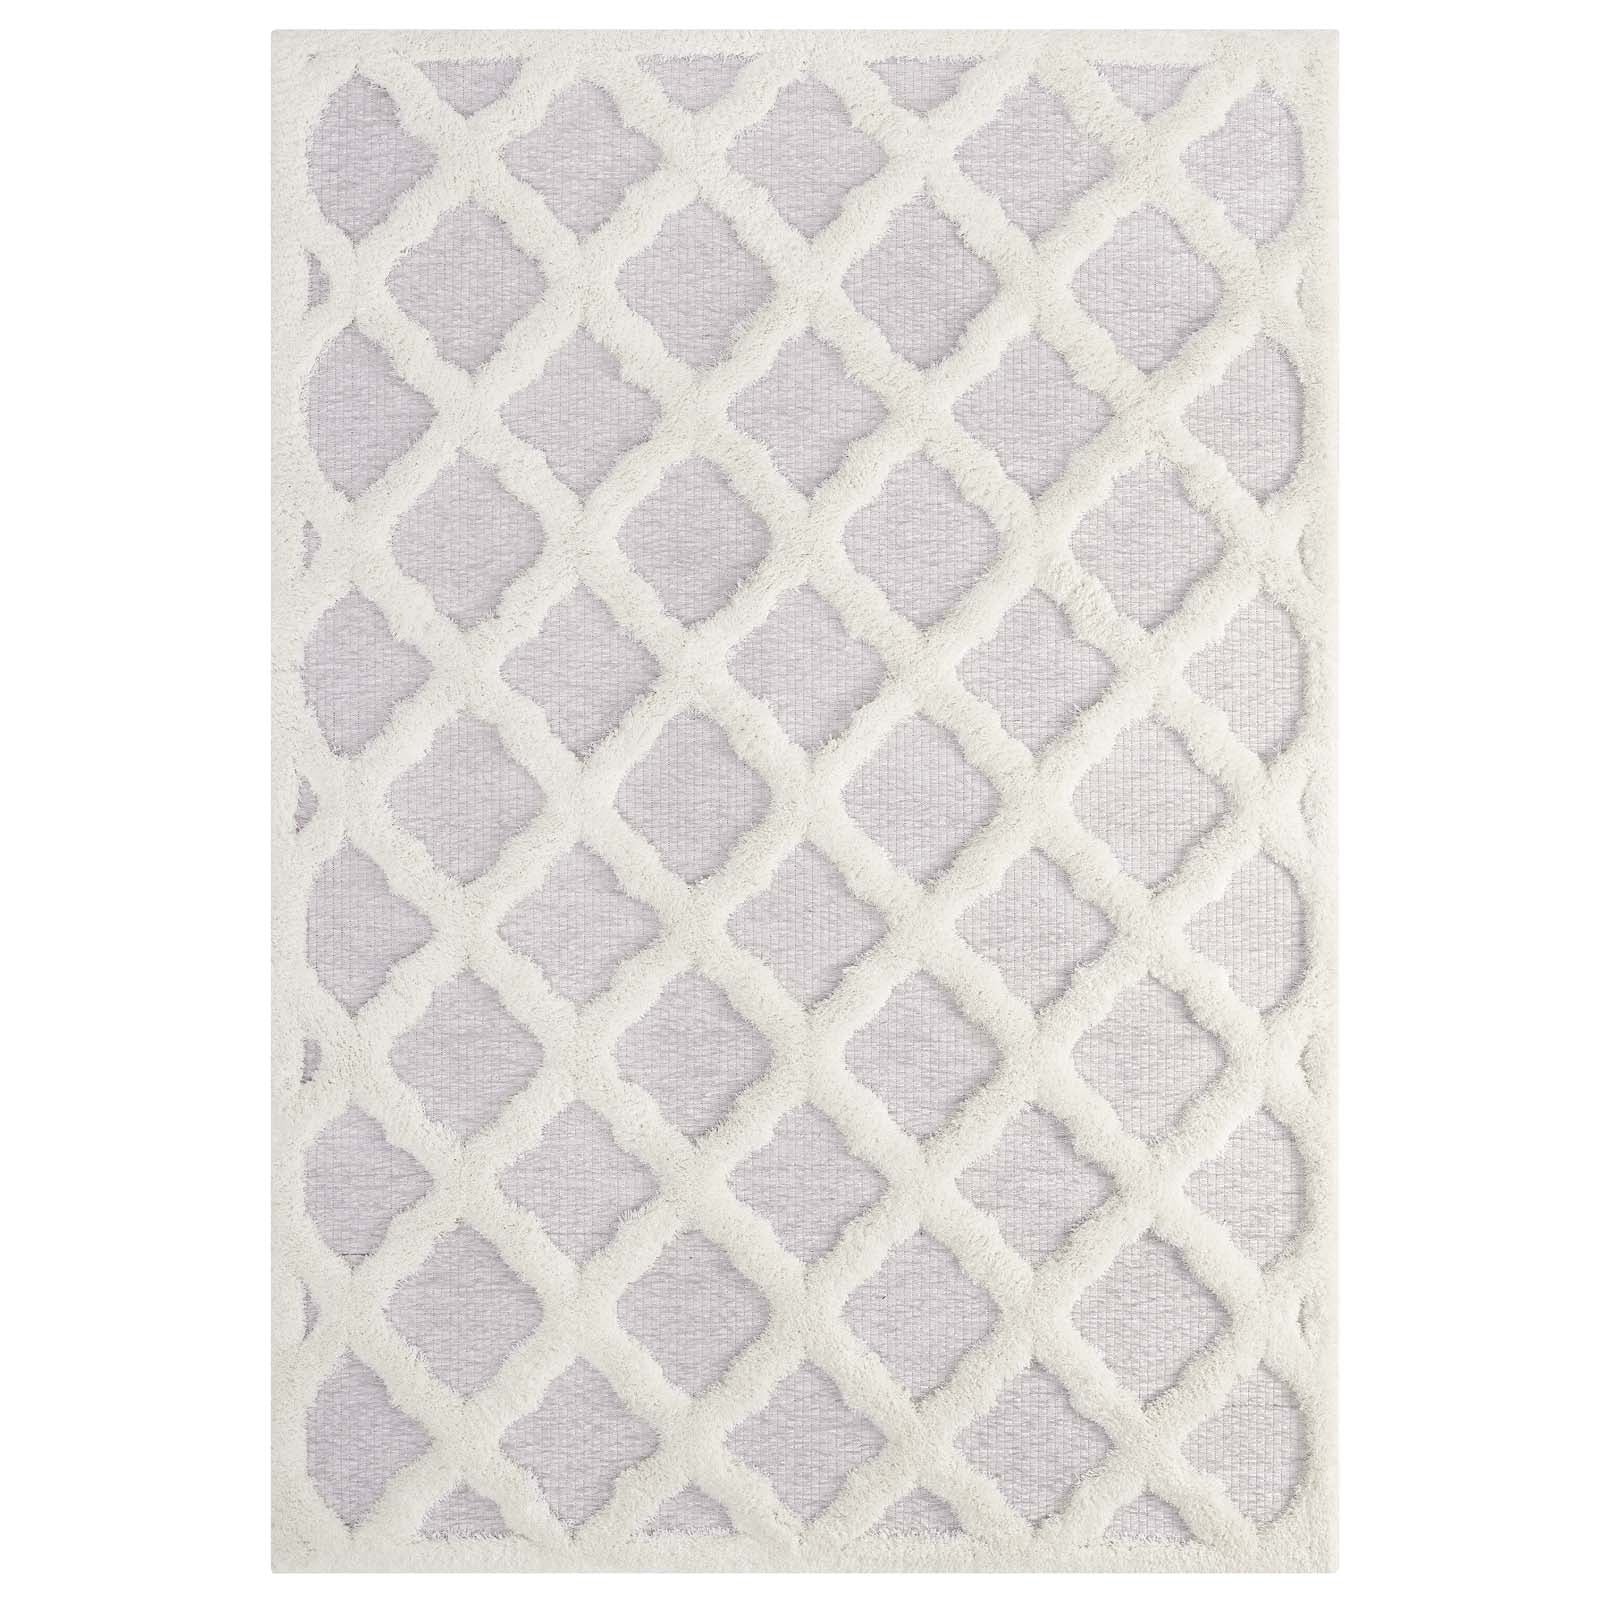 Whimsical Regale Abstract Moroccan Trellis 5x8 Shag Area Rug